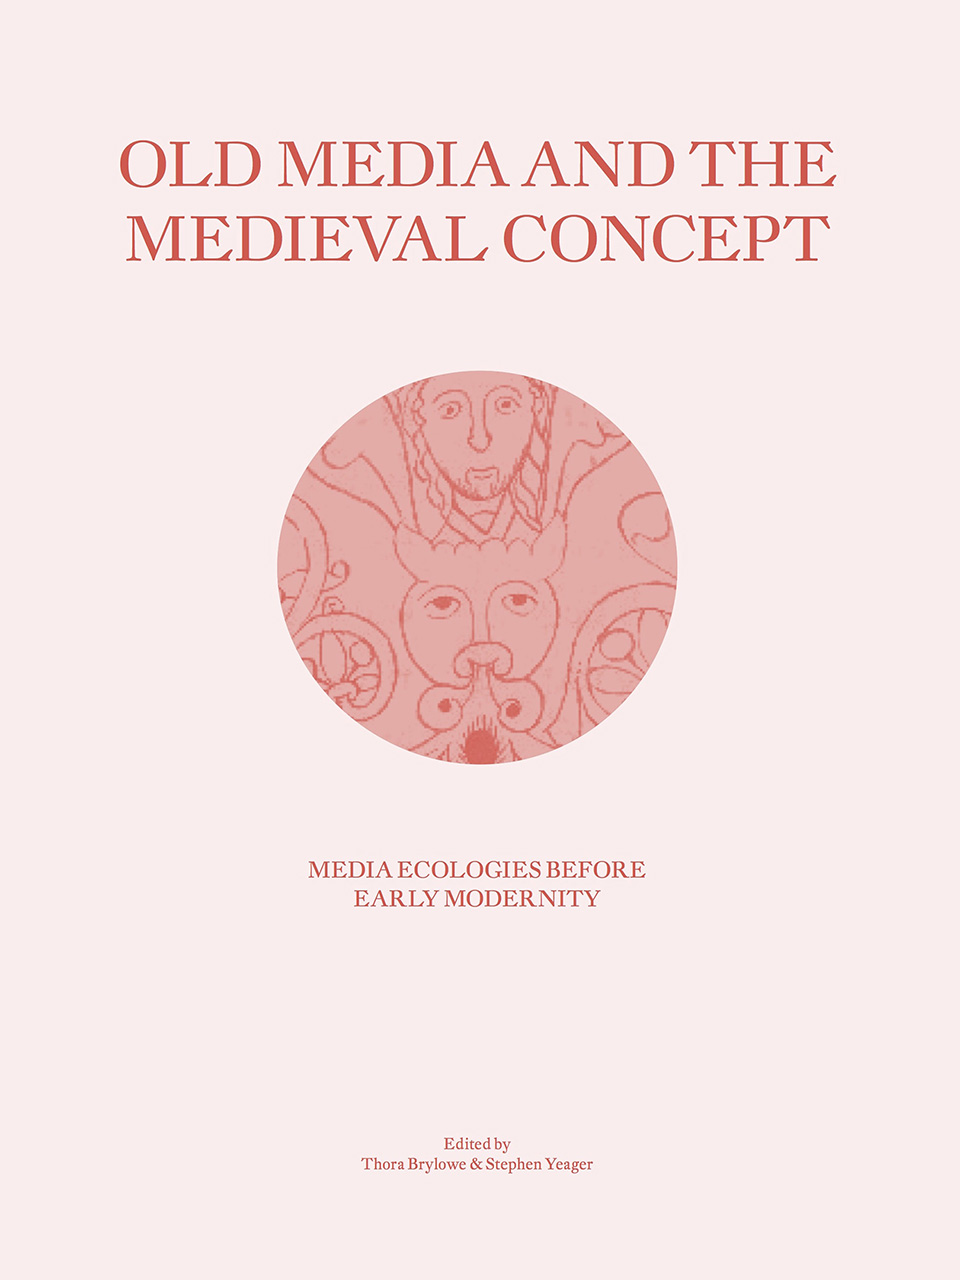 Old Media and the Medieval Concept: Media Ecologies Before Early Modernity